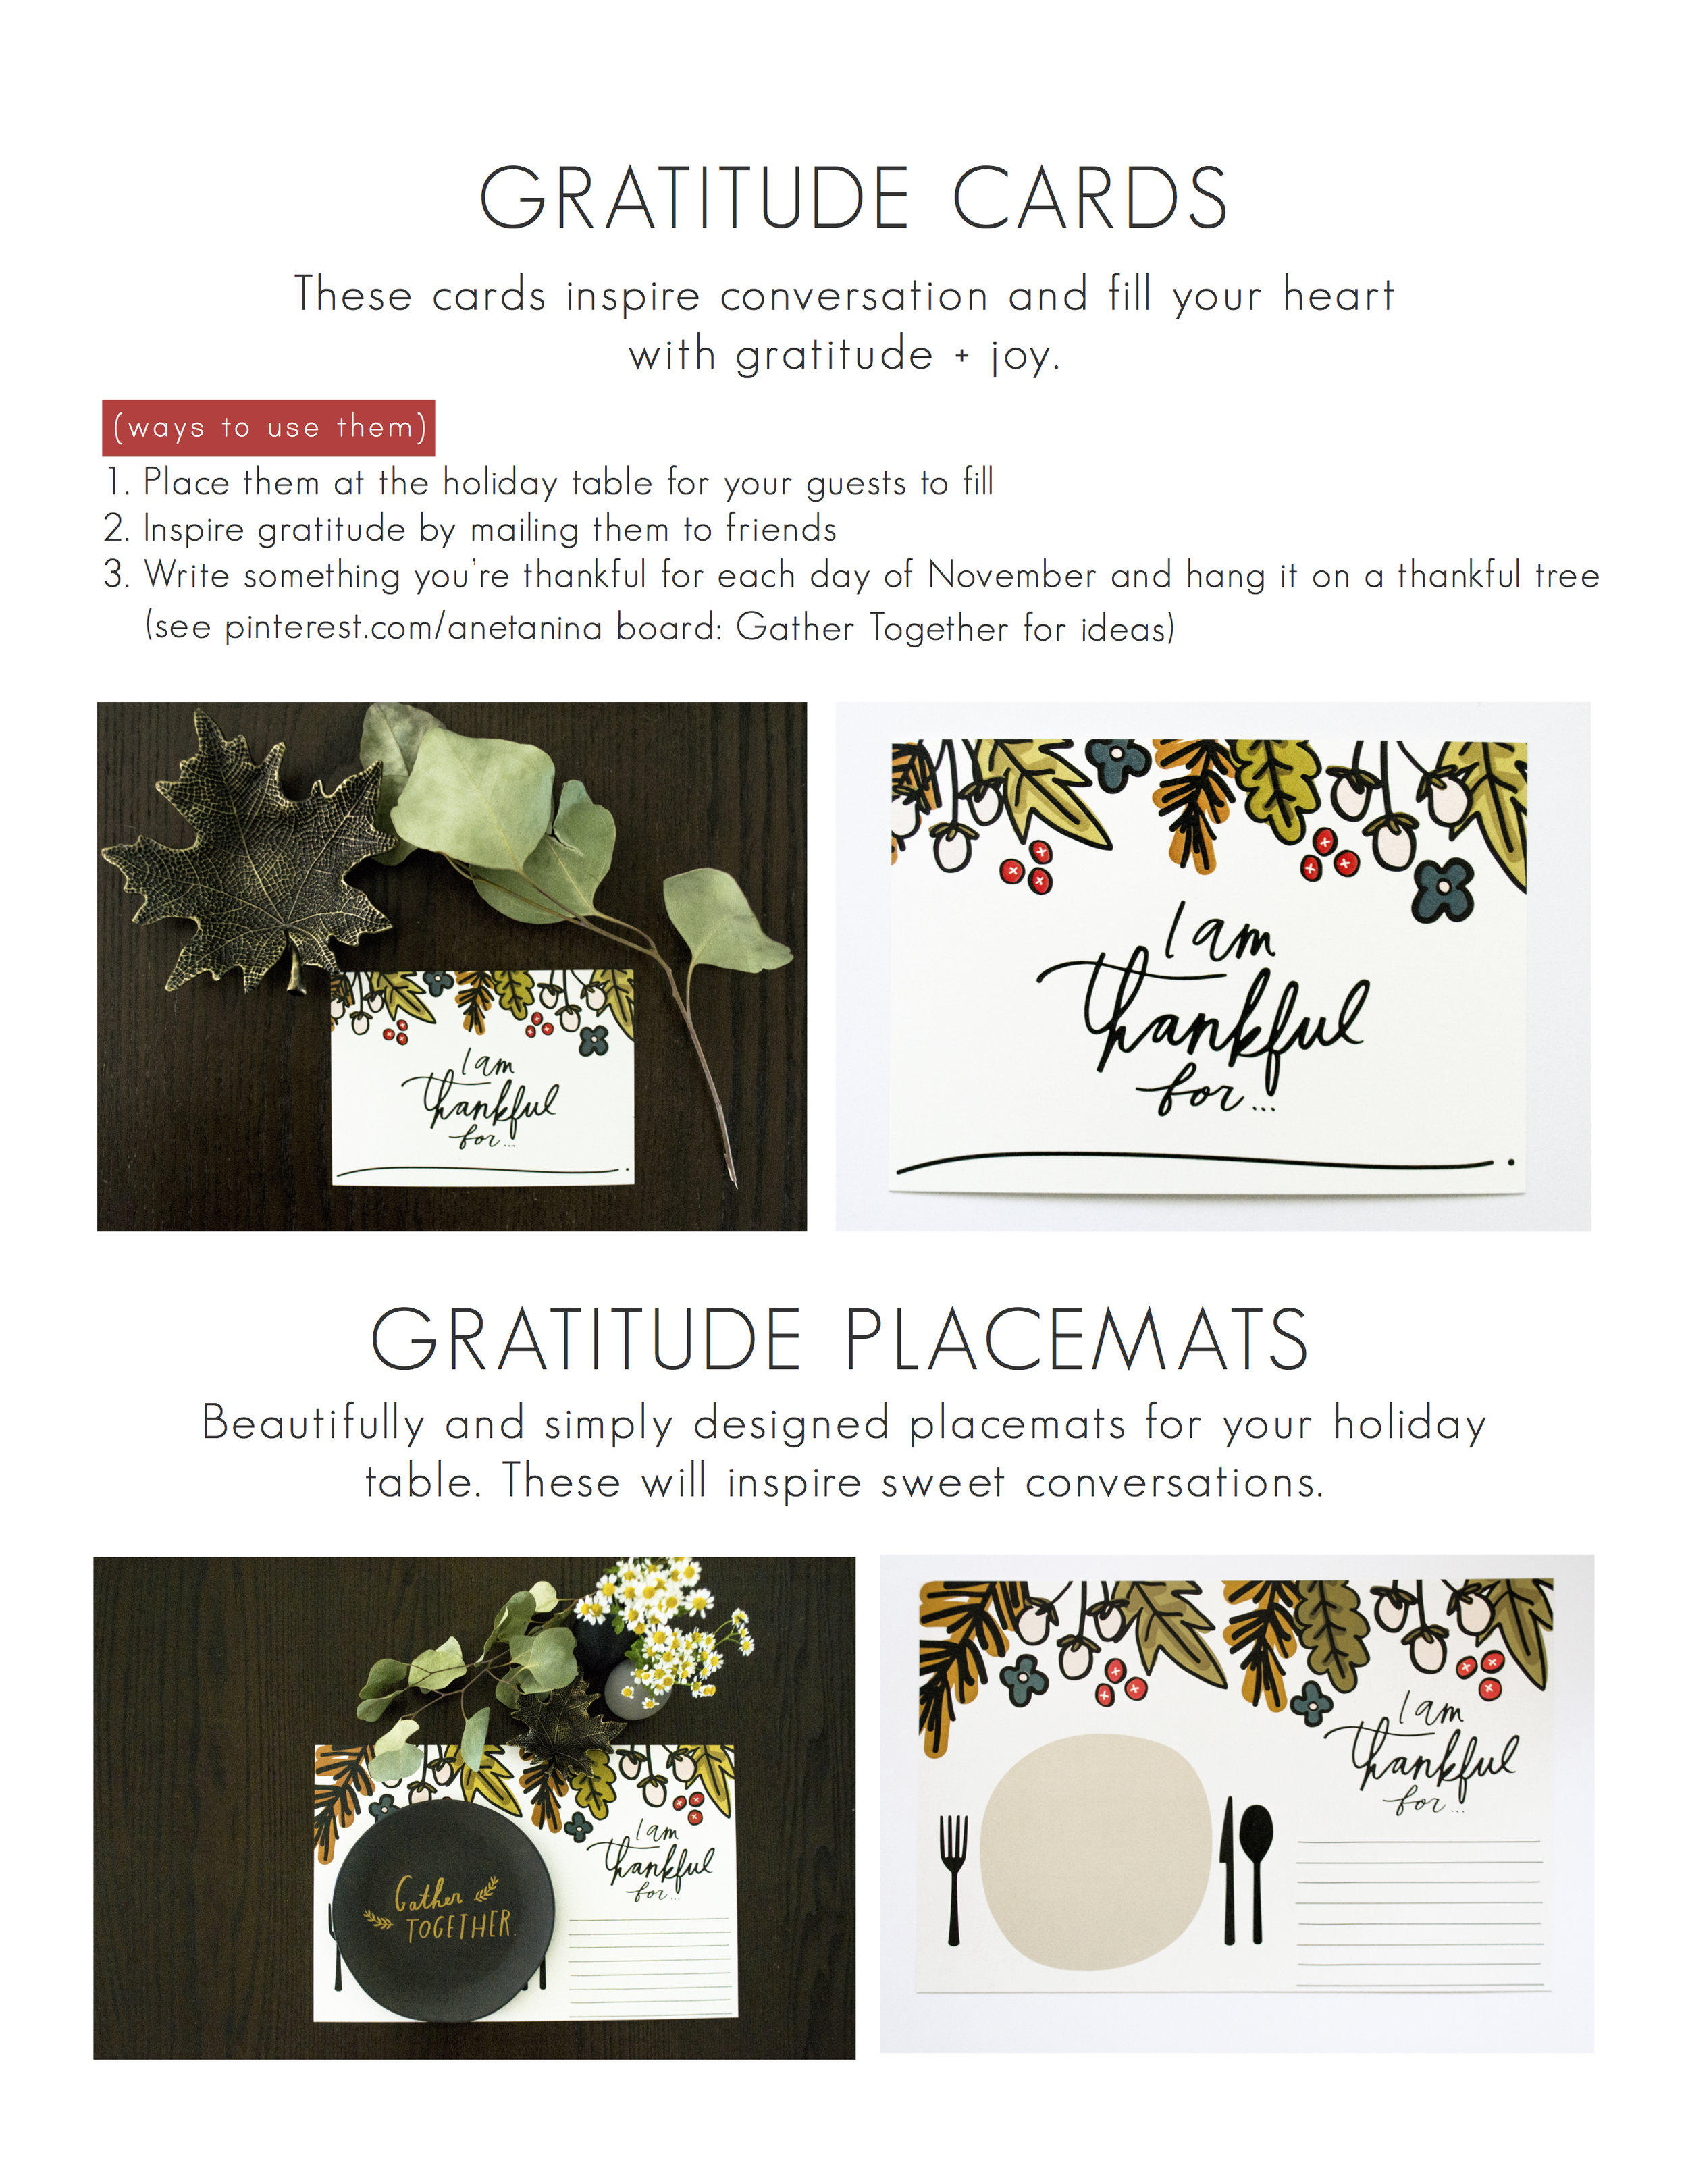 page 4 gratitude cards and placemates.jpeg